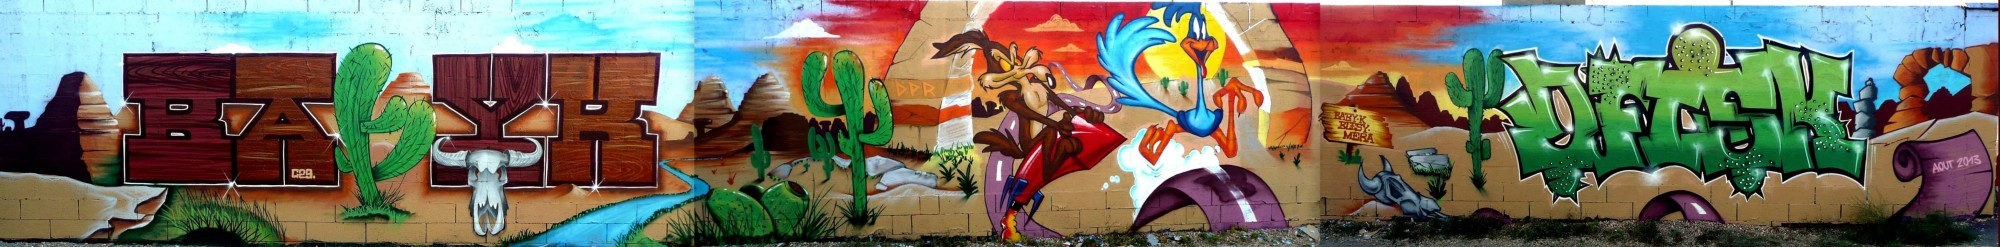 Cherbourg – Aout 2013 feat Sible and Mera